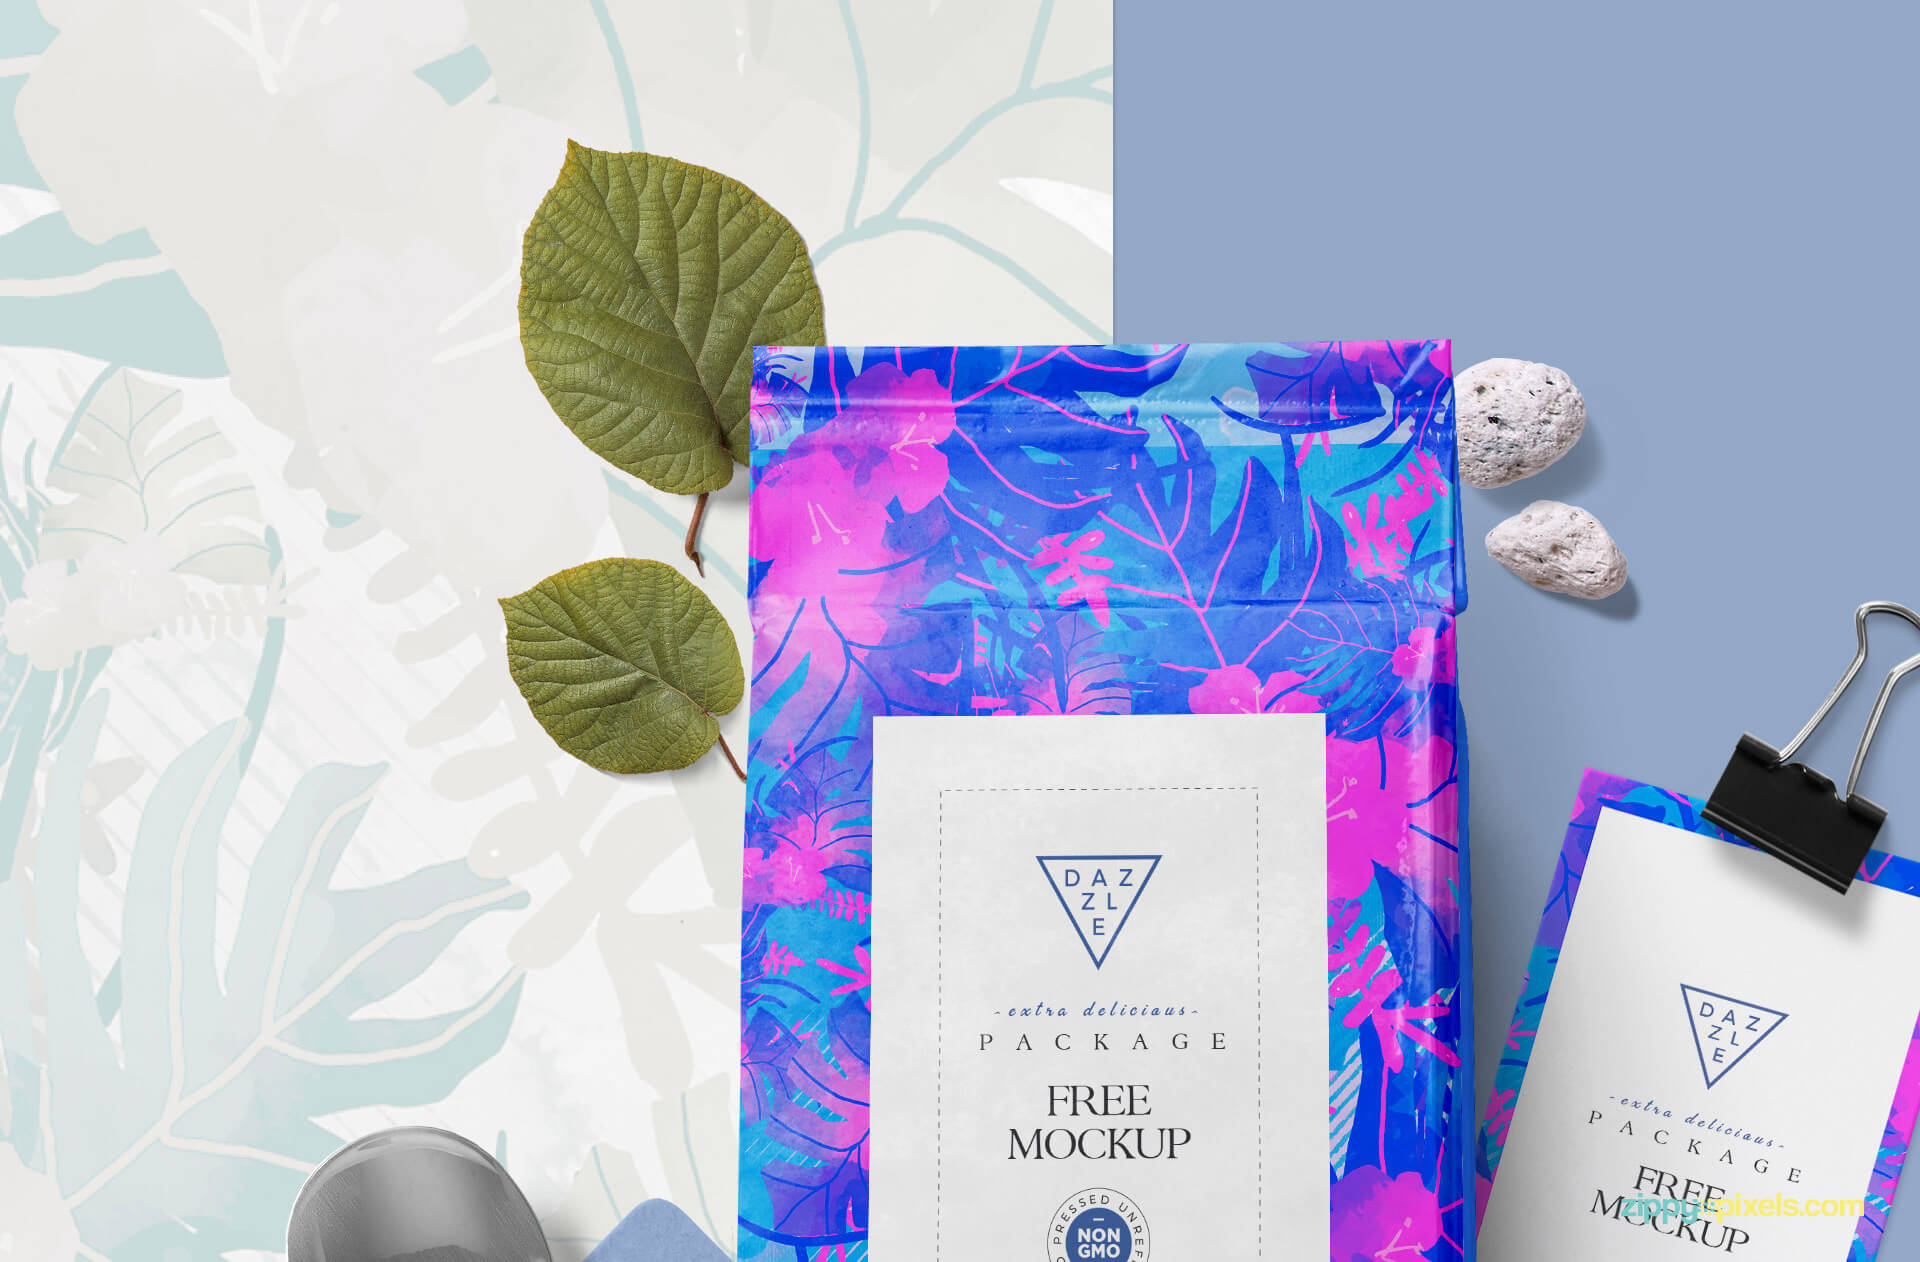 Free Packaging Pouch Mockup PSD Template2 (1)